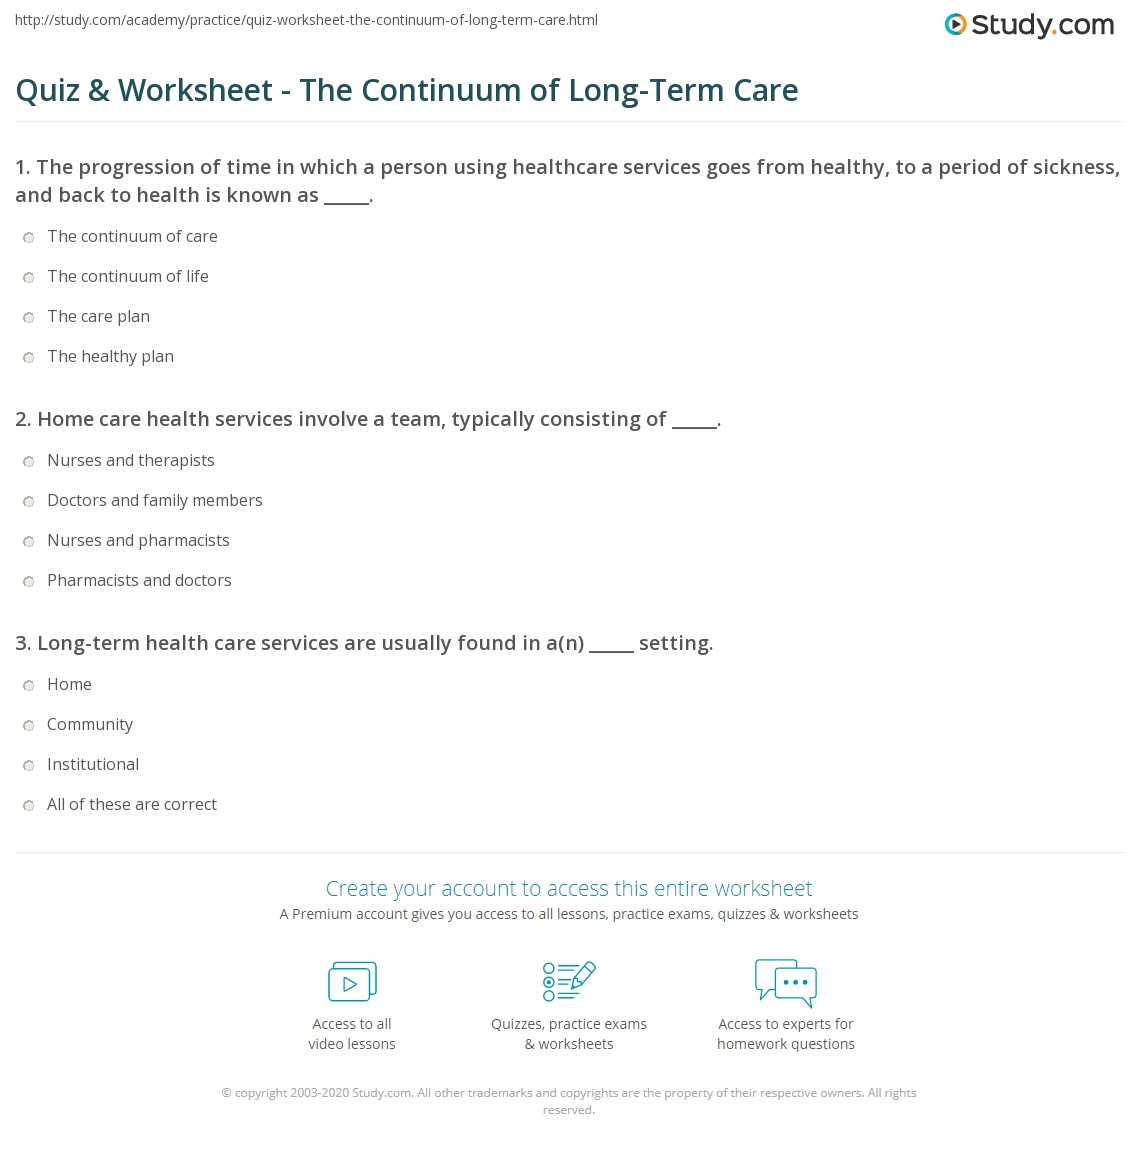 quiz & worksheet - the continuum of long-term care | study